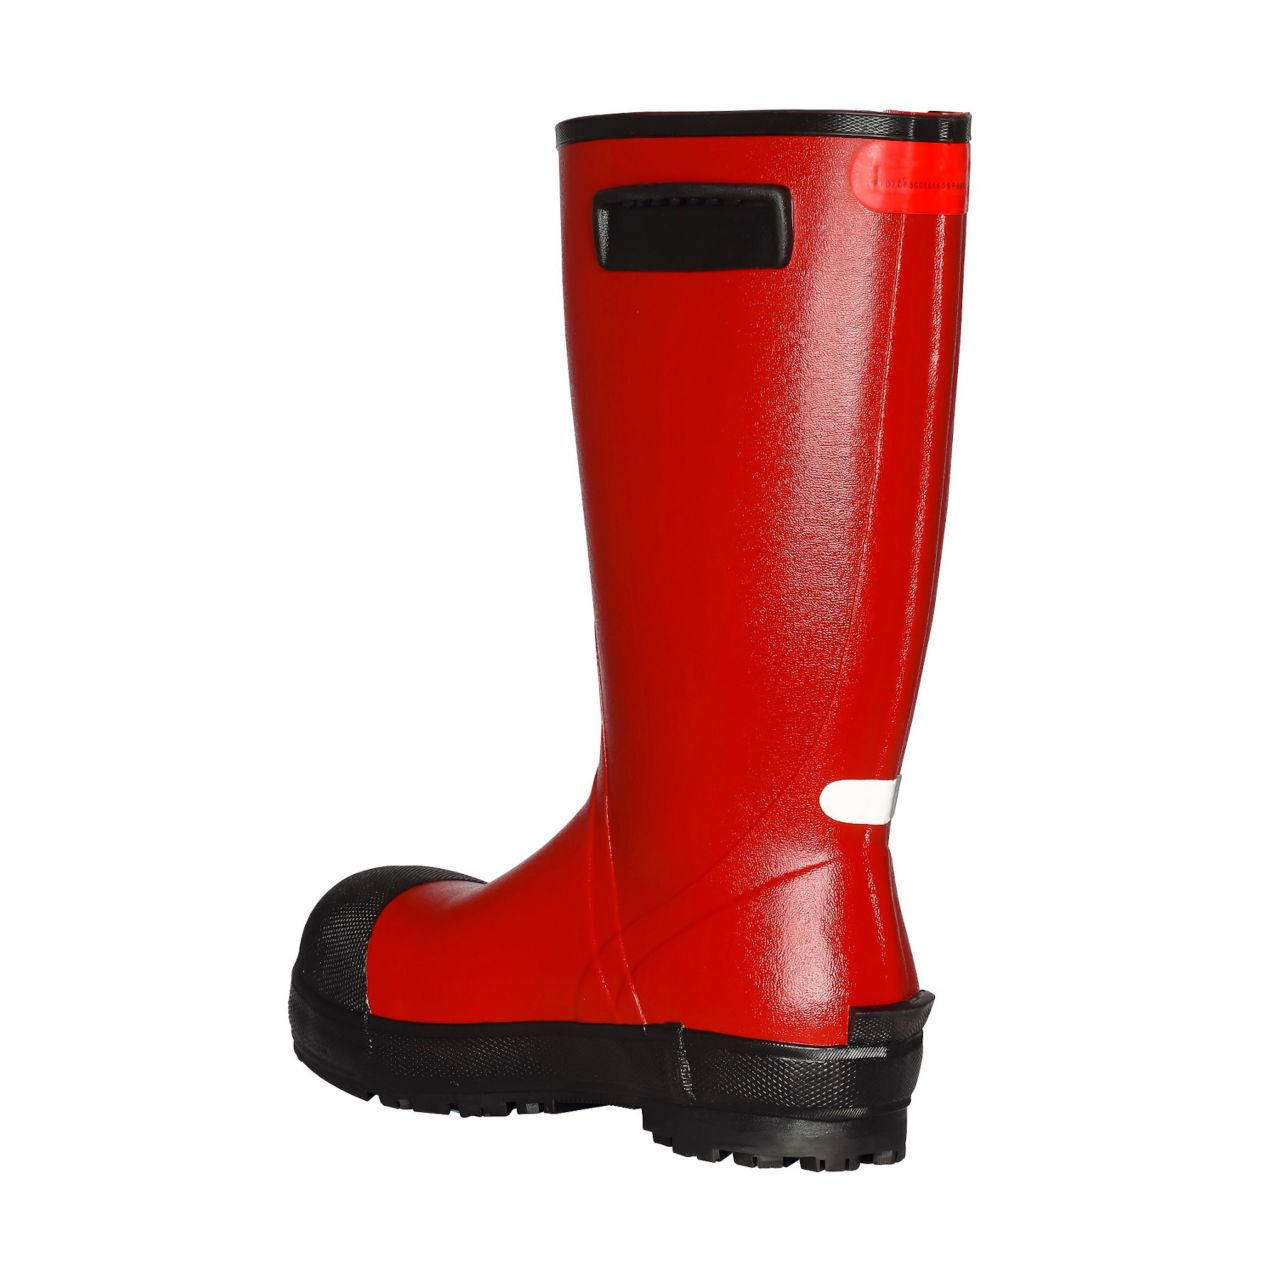 sps-his-electrigrip-thermal-boots-rear-left